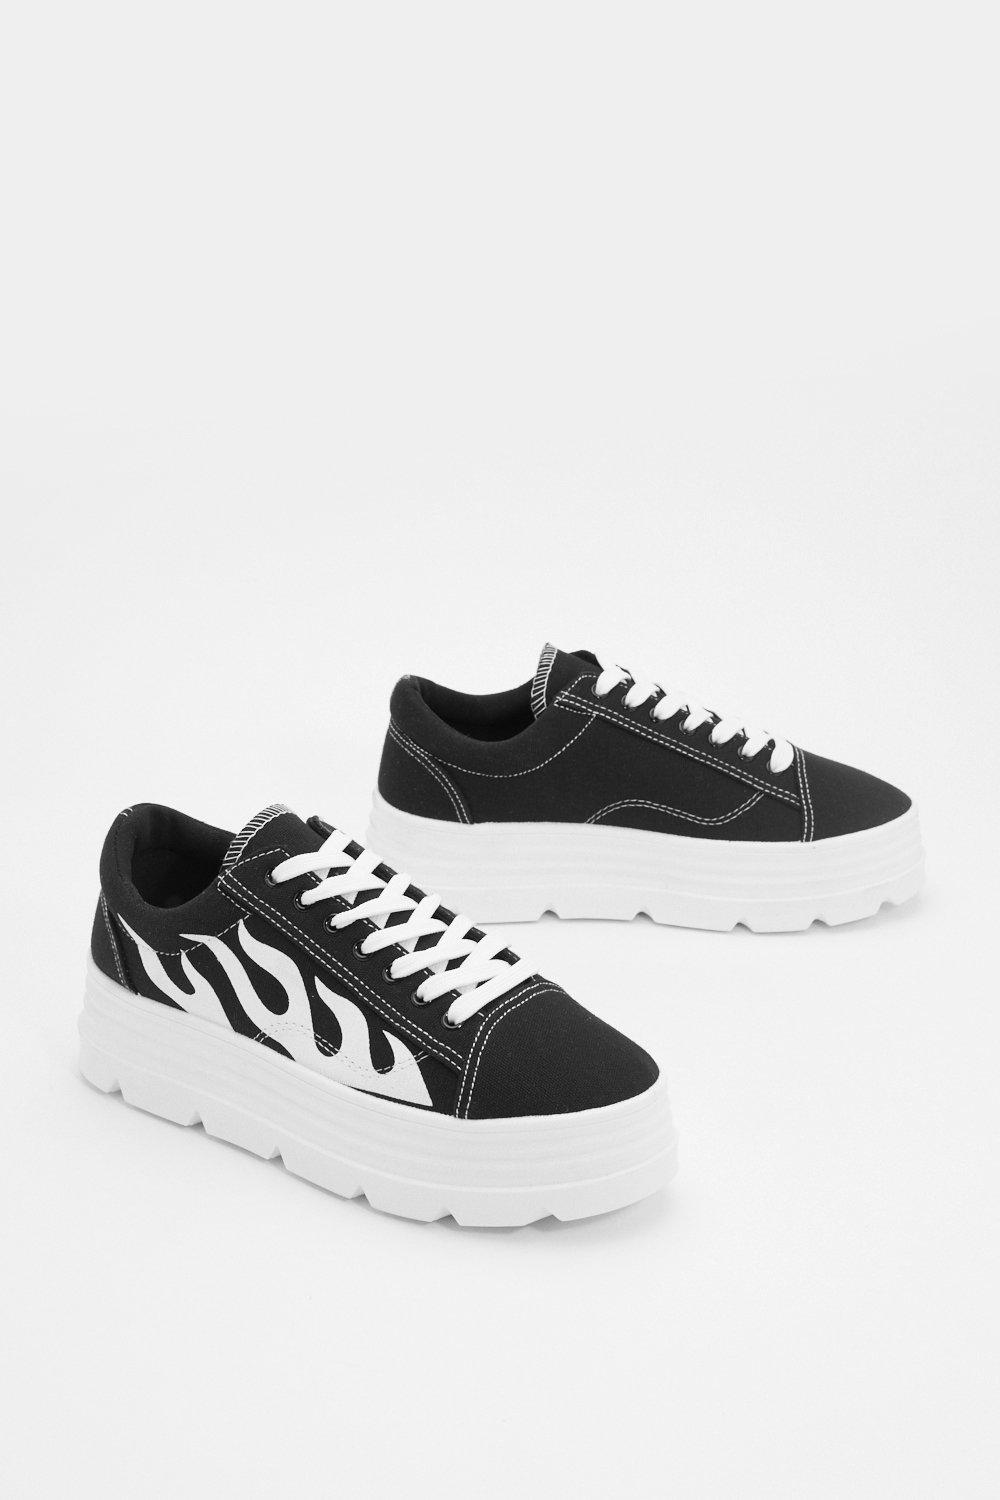 4a92ee13d The Heat is On Platform Sneakers | Shop Clothes at Nasty Gal!